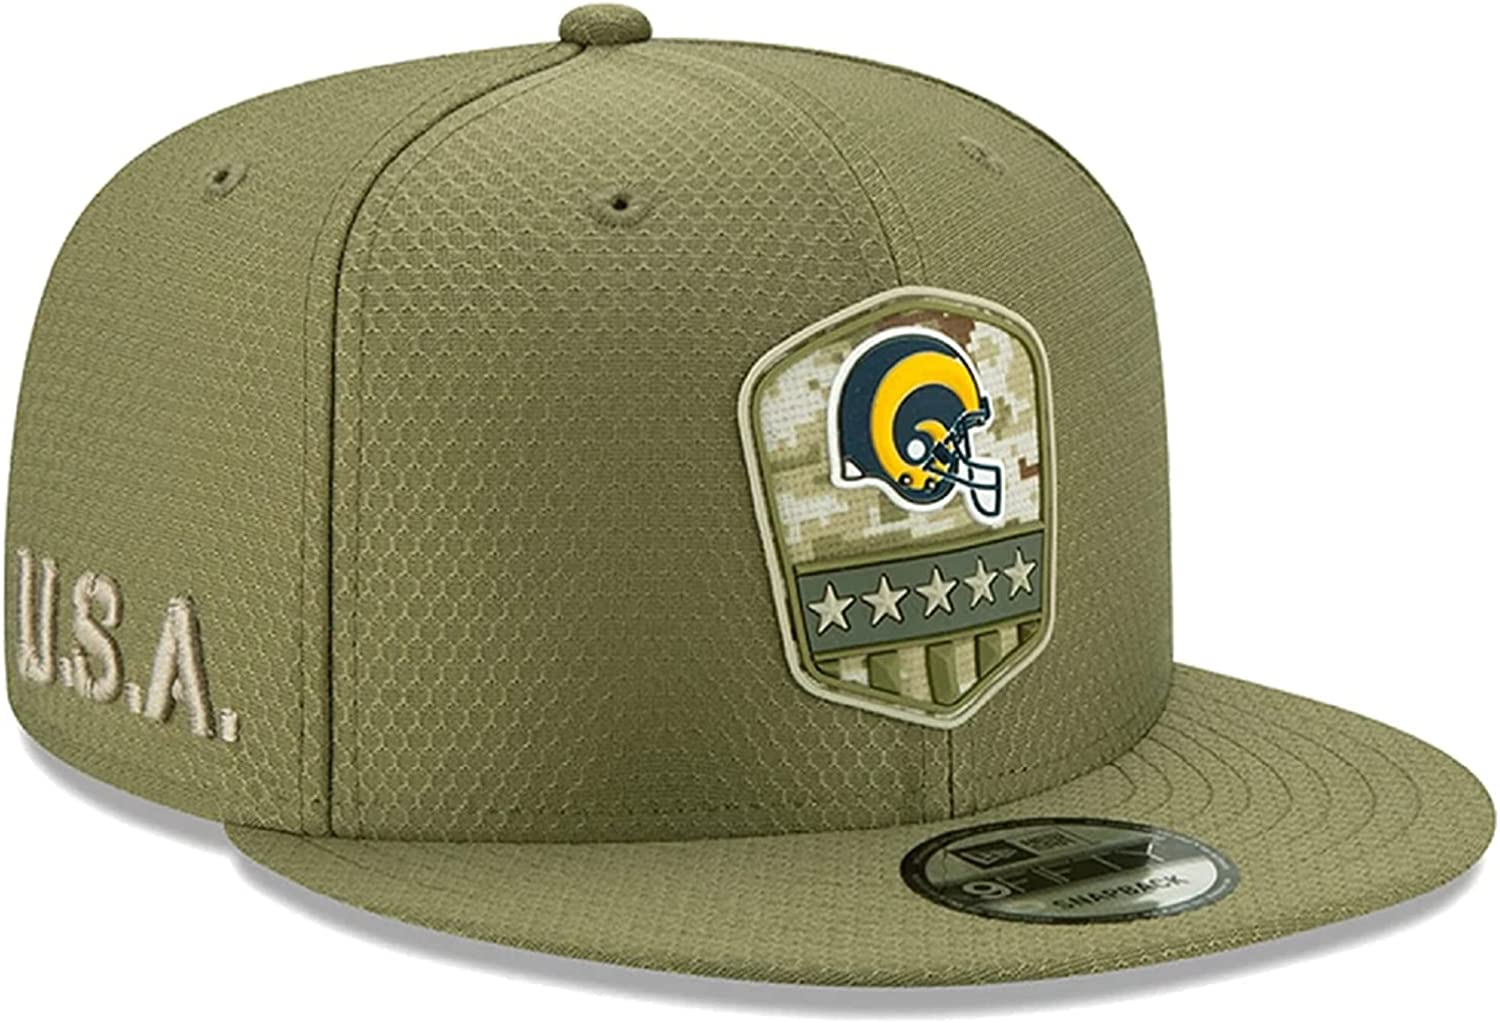 New Washington Mall Era Authentic Exclusive Rams Los Louis 9Fifty St. Sn Angeles High order